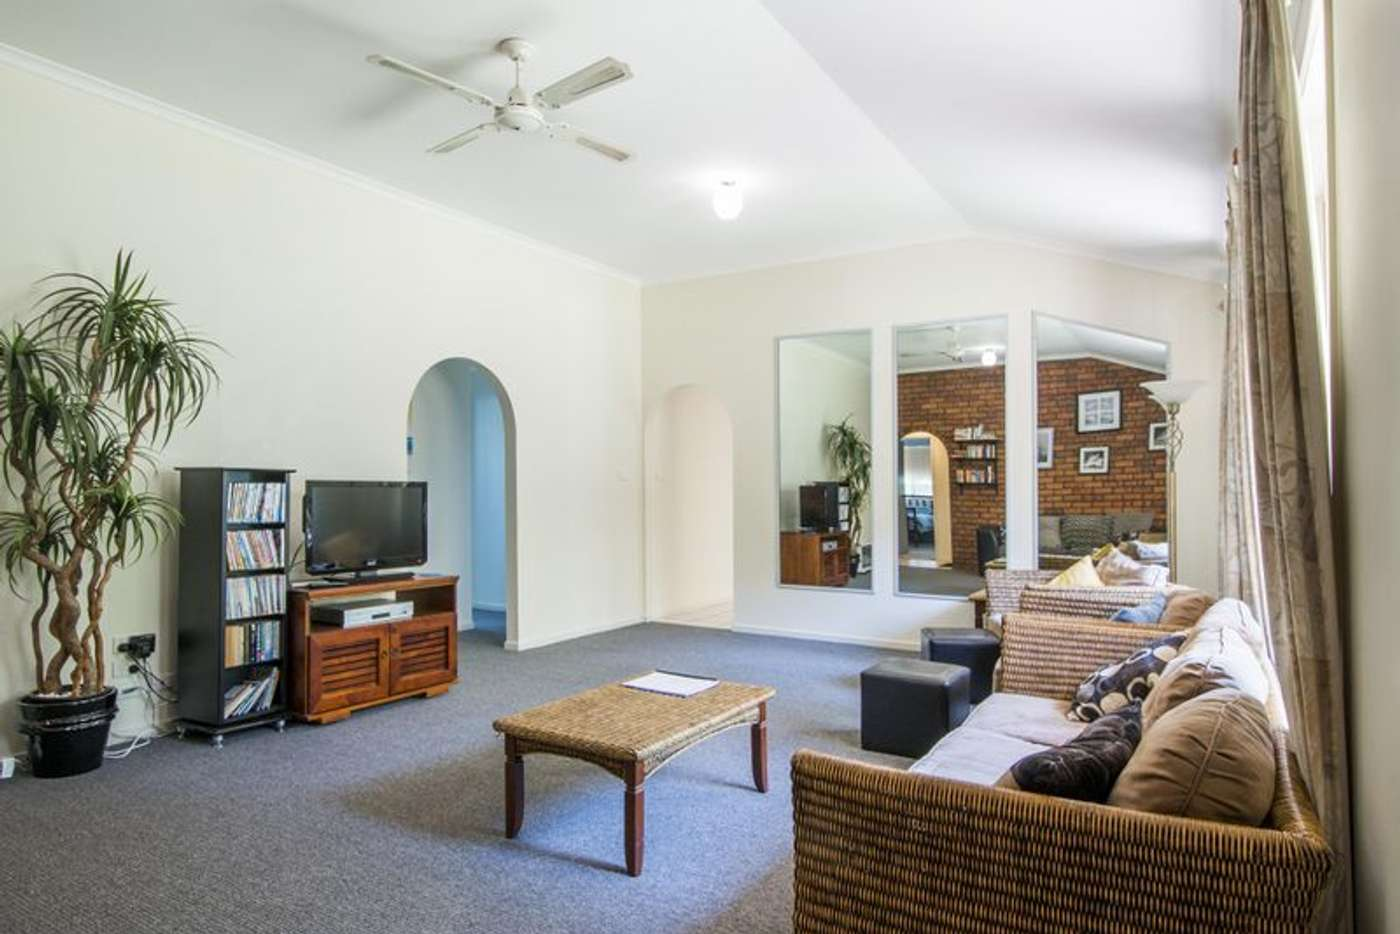 Main view of Homely house listing, 6 Vere Street, Iluka NSW 2466